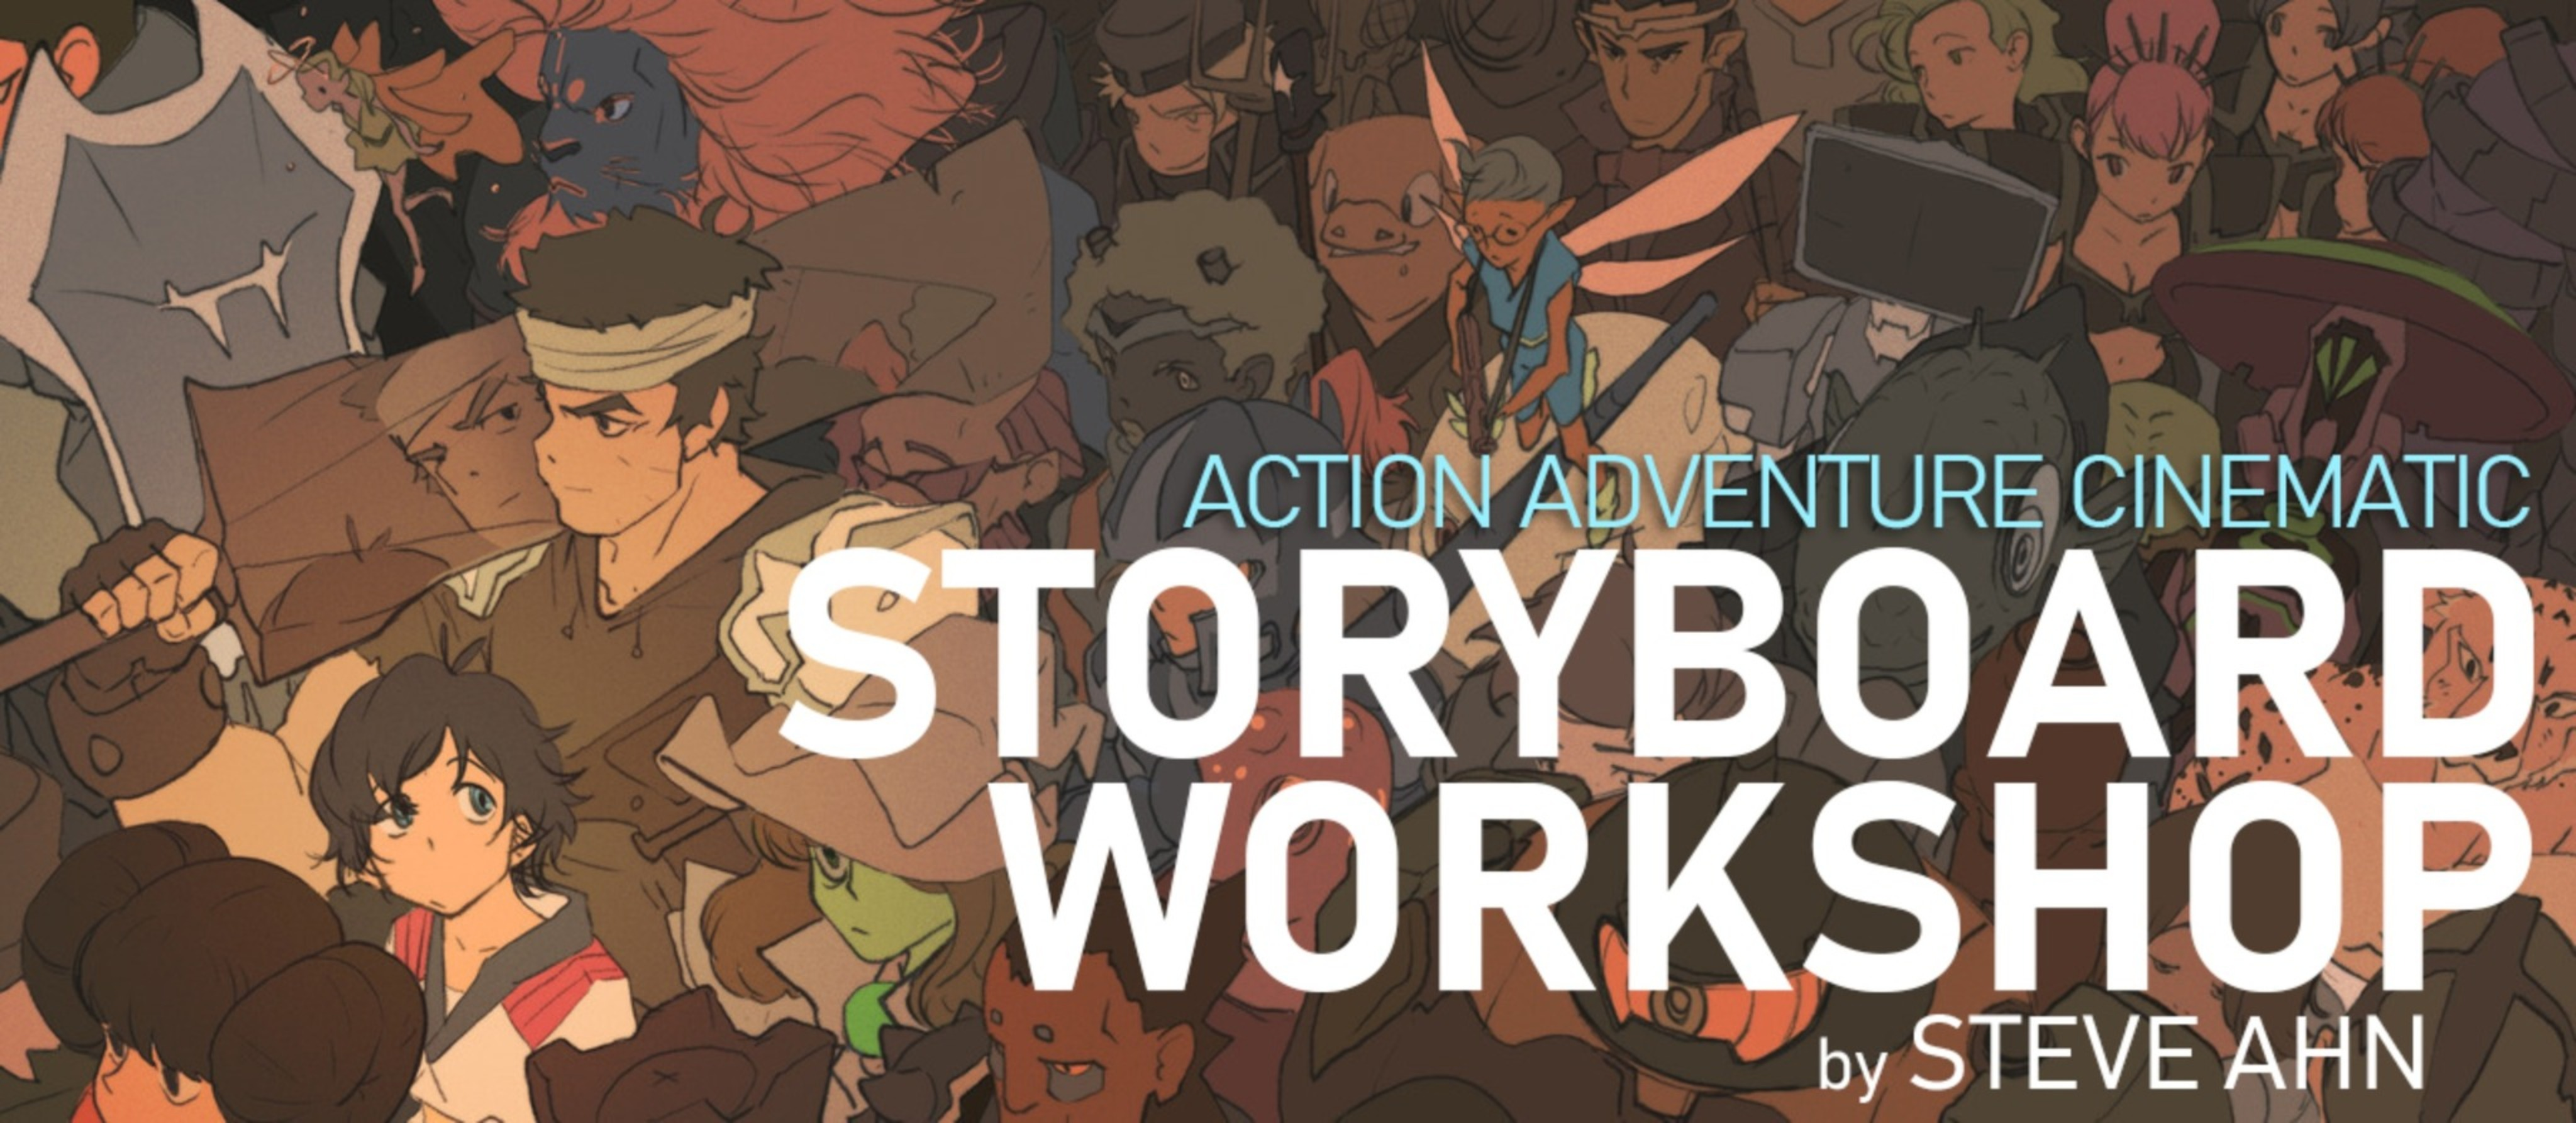 Action Adventure Cinematic Storyboard Workshop / SUMMER 2020